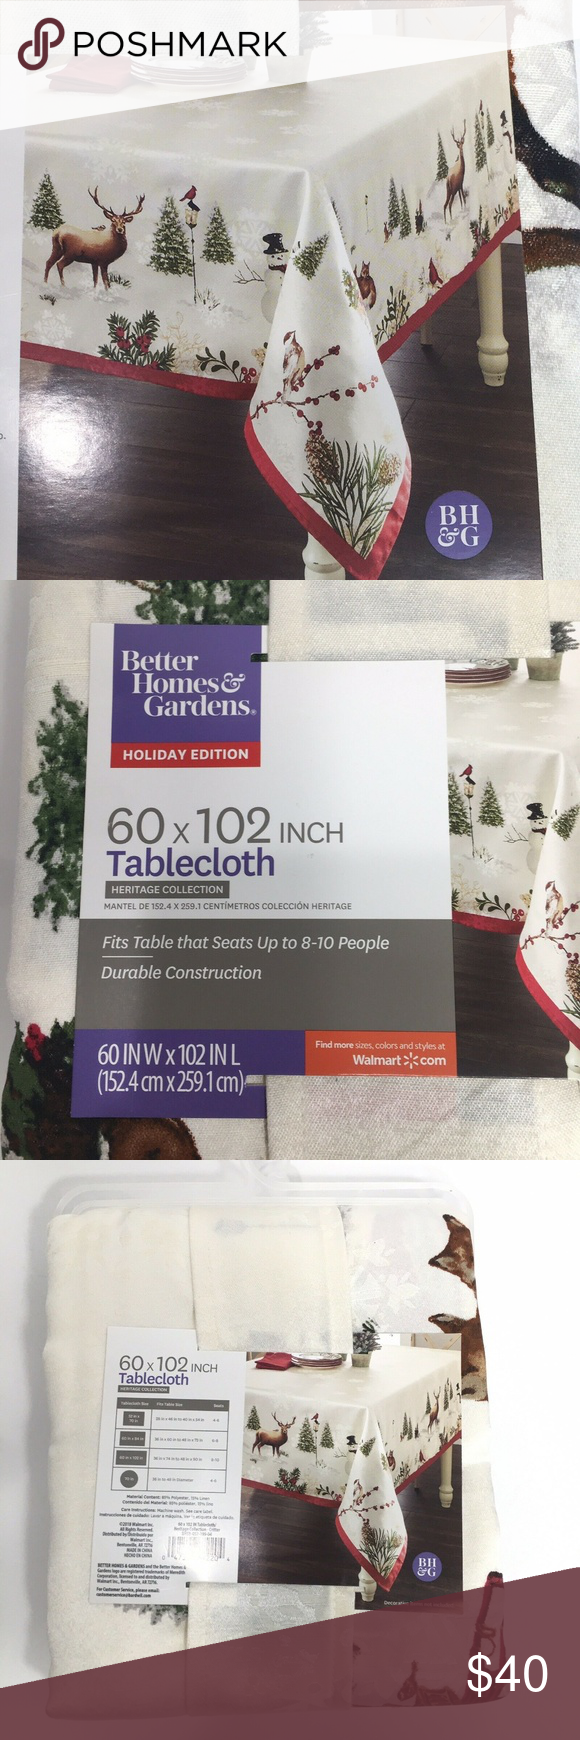 Better Homes And Gardens Holiday Edition Tablecloth